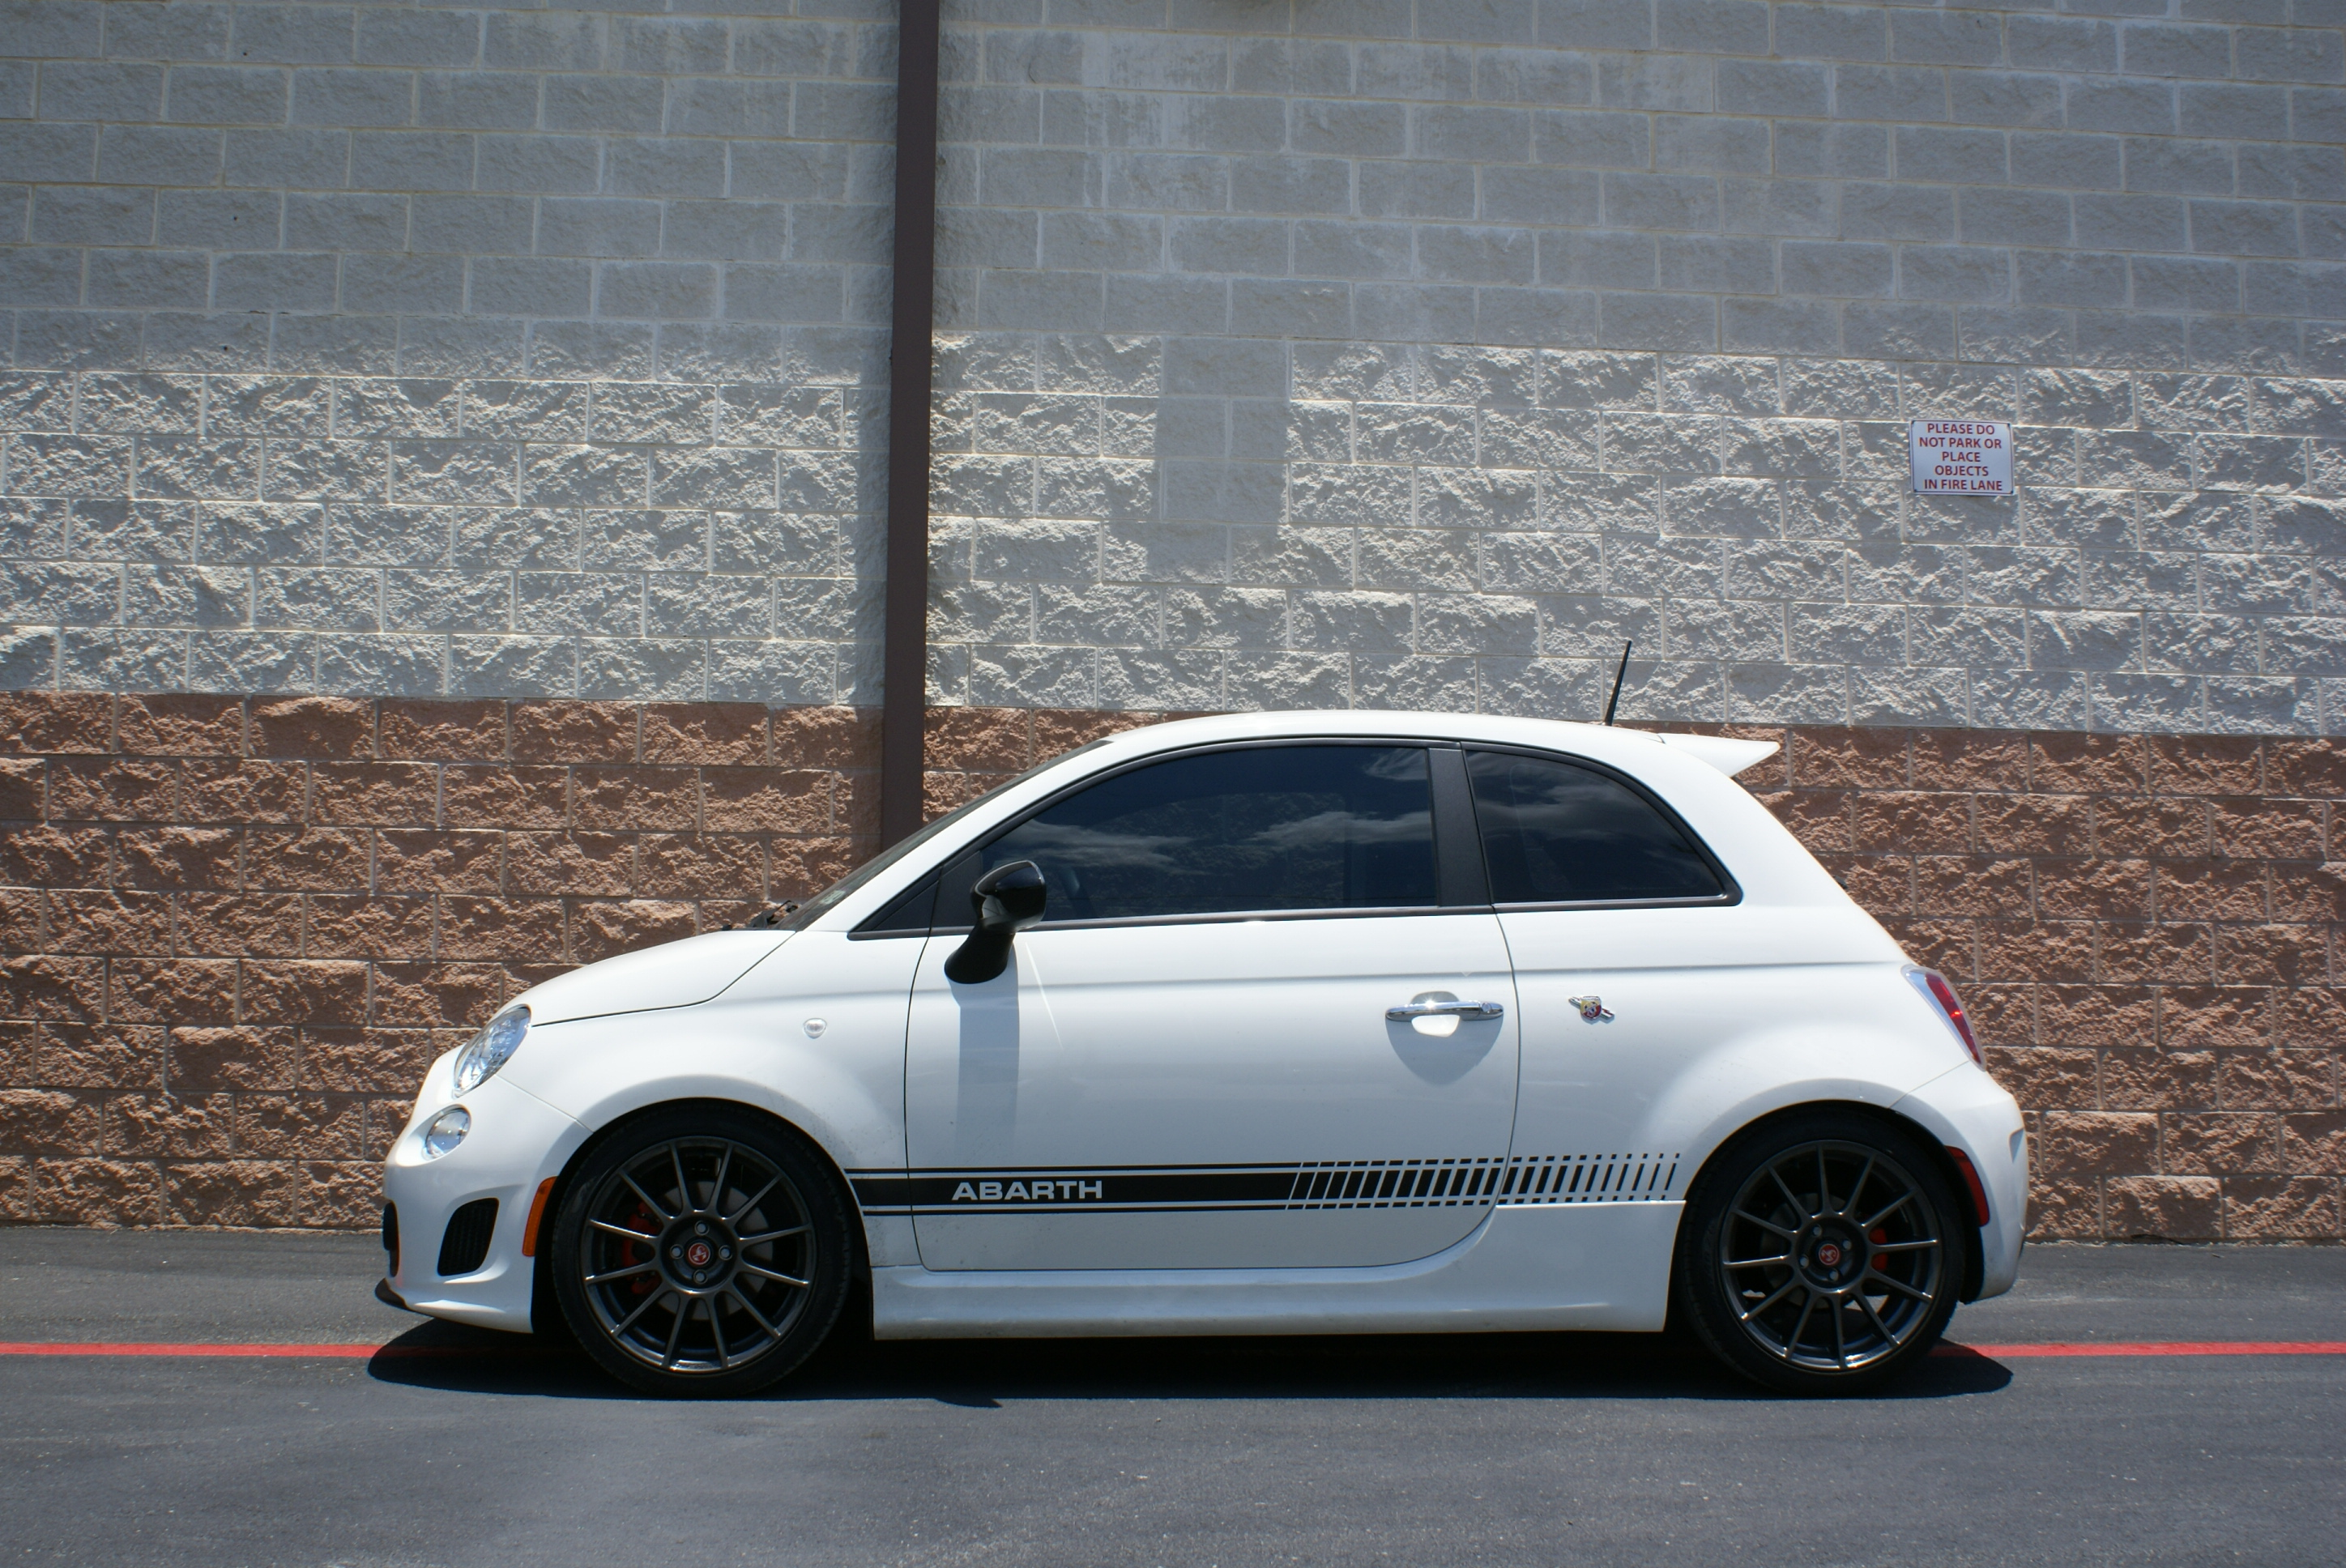 Kw V1 Coilovers On Fiat 500 Abarth Dbc Tuning 210 399